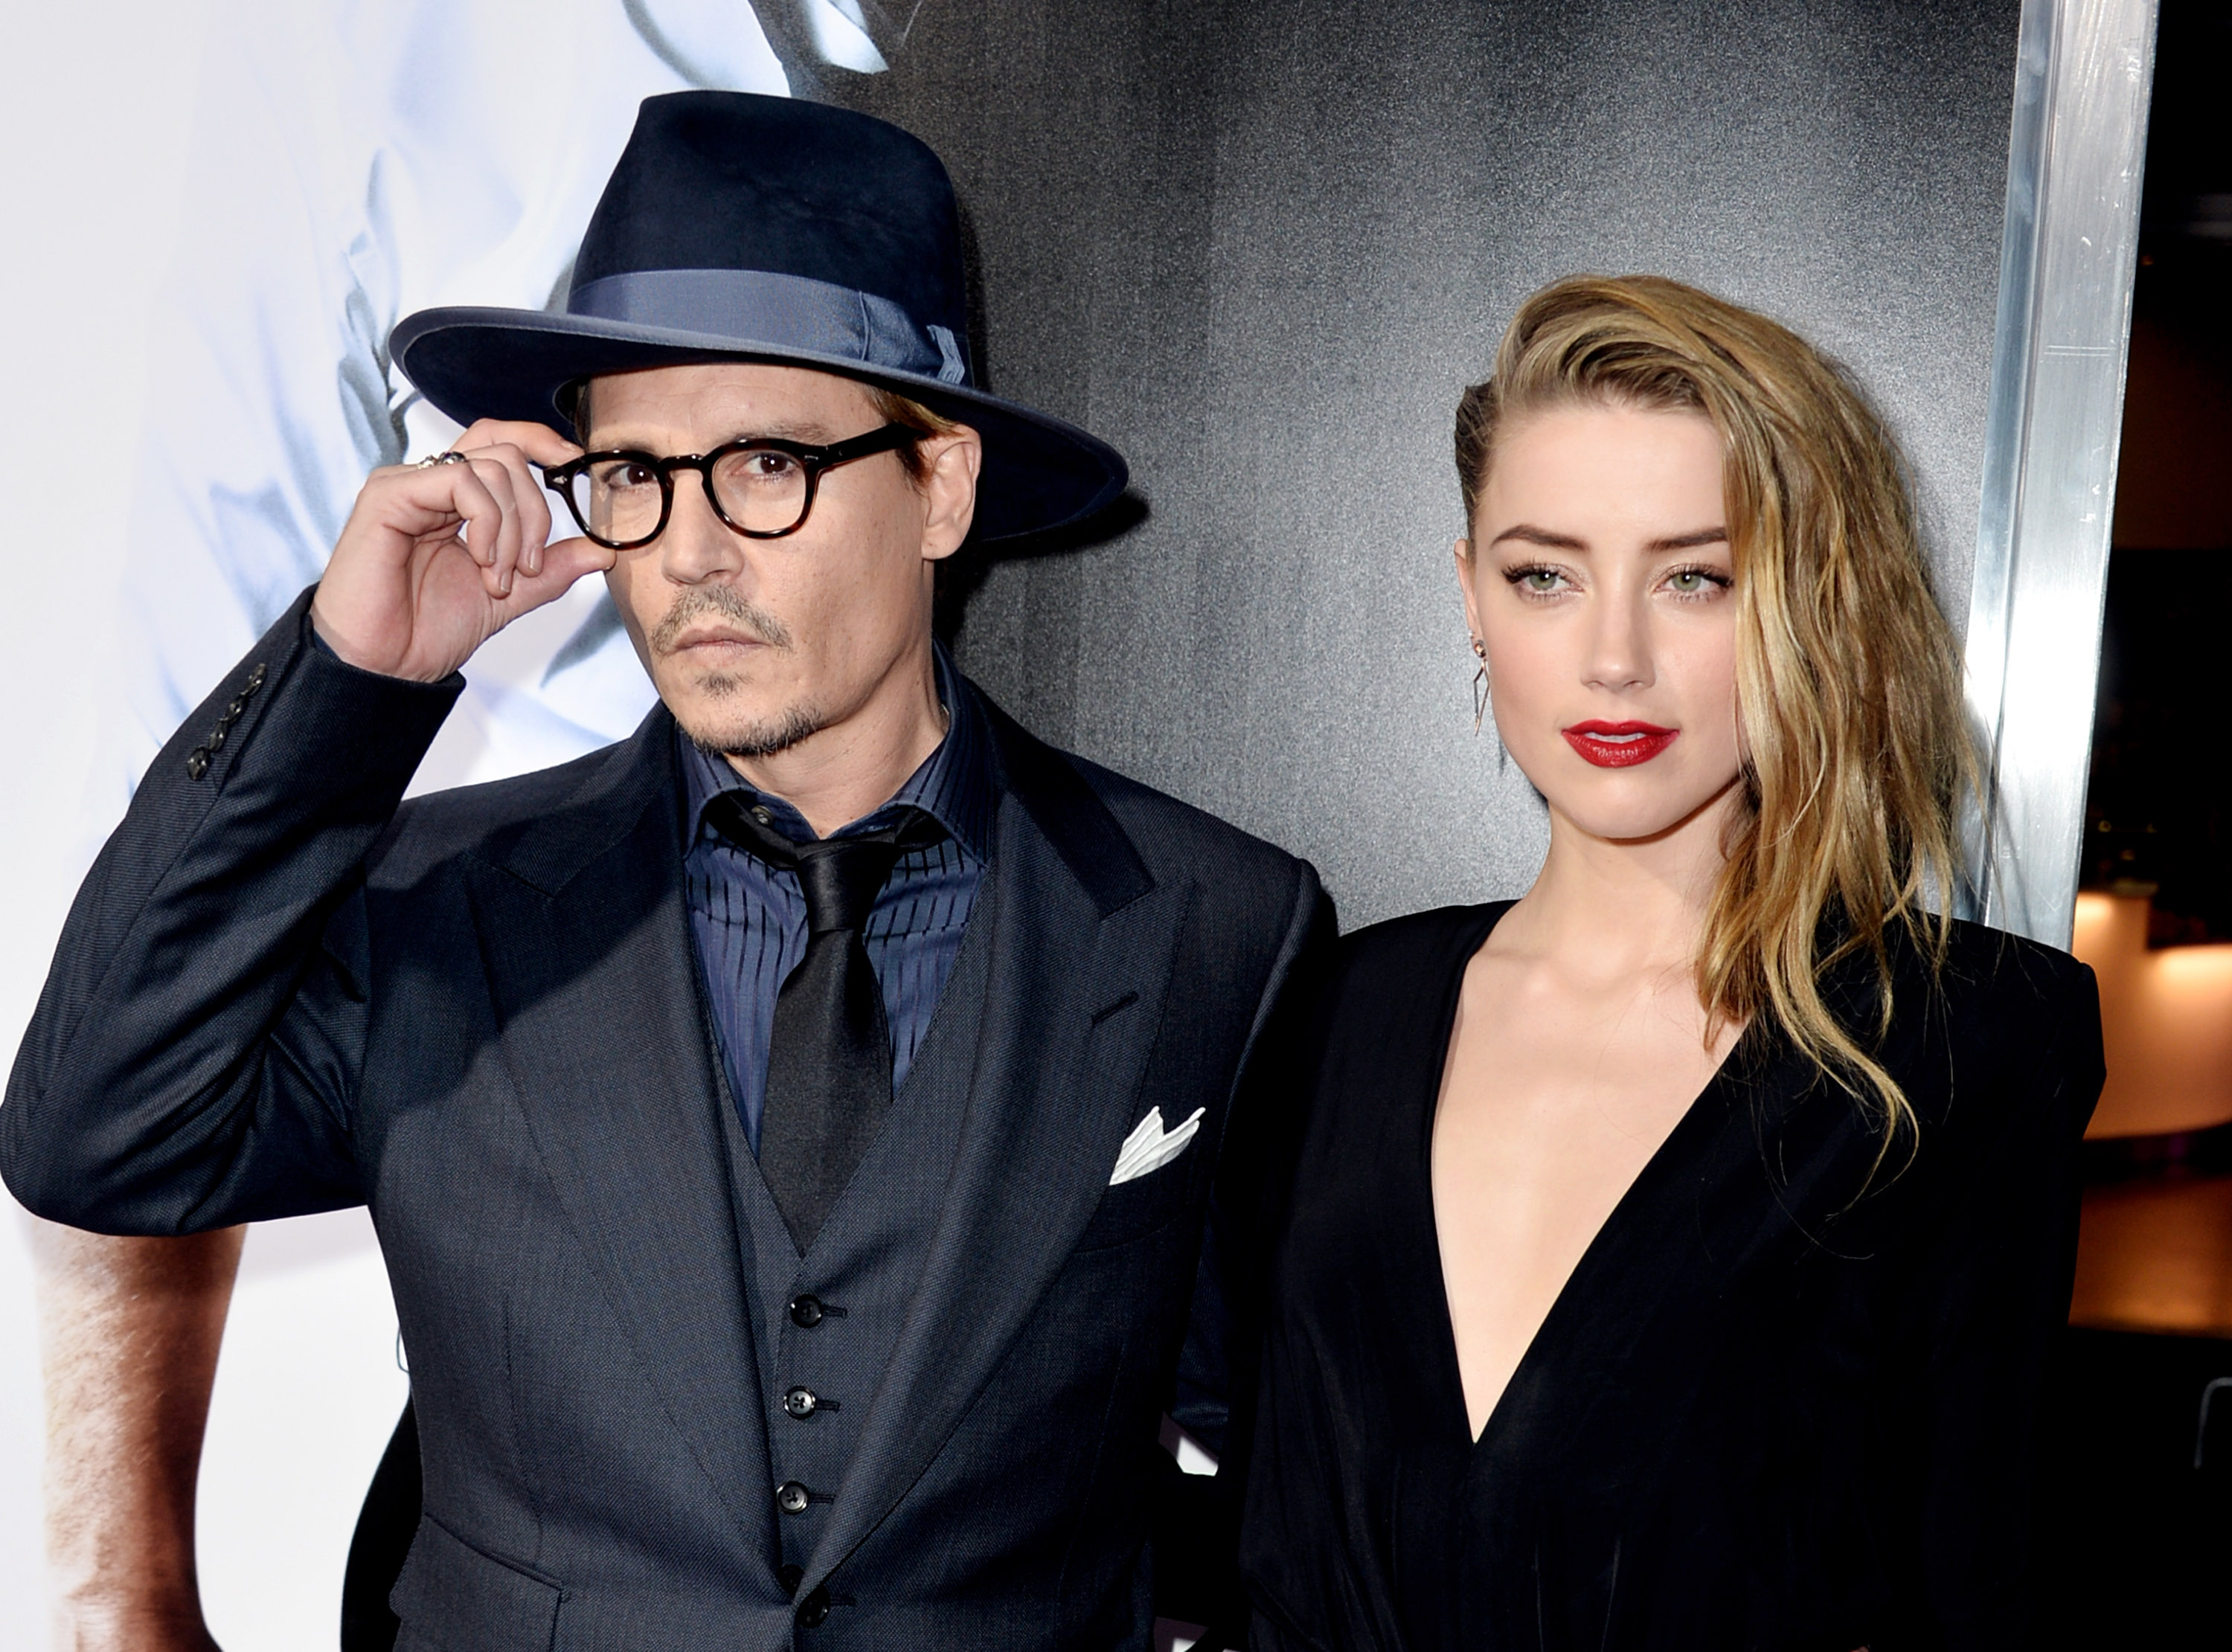 Johnny Depp breaks silence on shock divorce from Amber Heard saying he hopes it's 'over quickly'